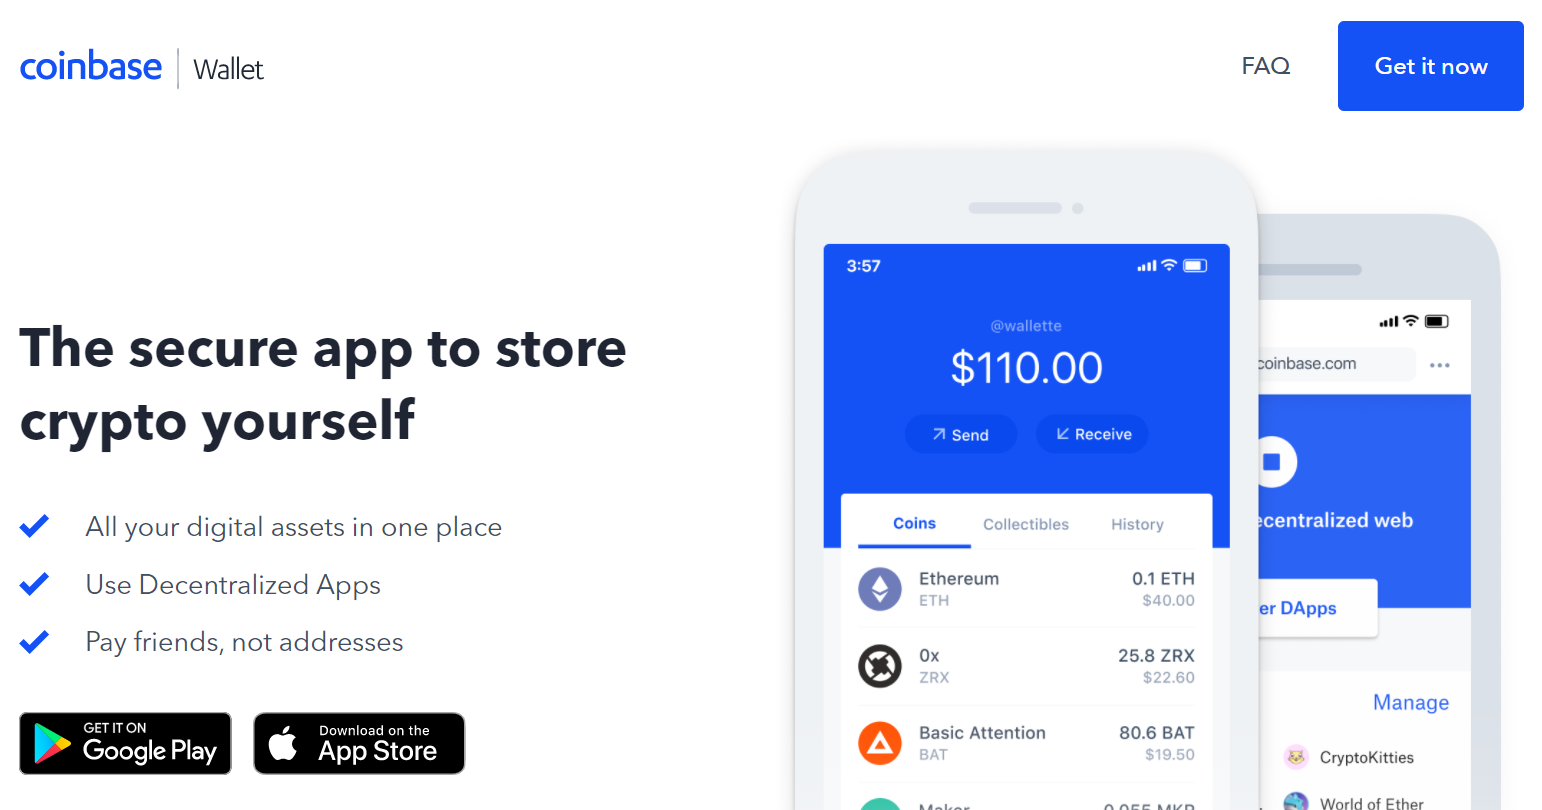 Coinbase Review - Wallet Landing Page